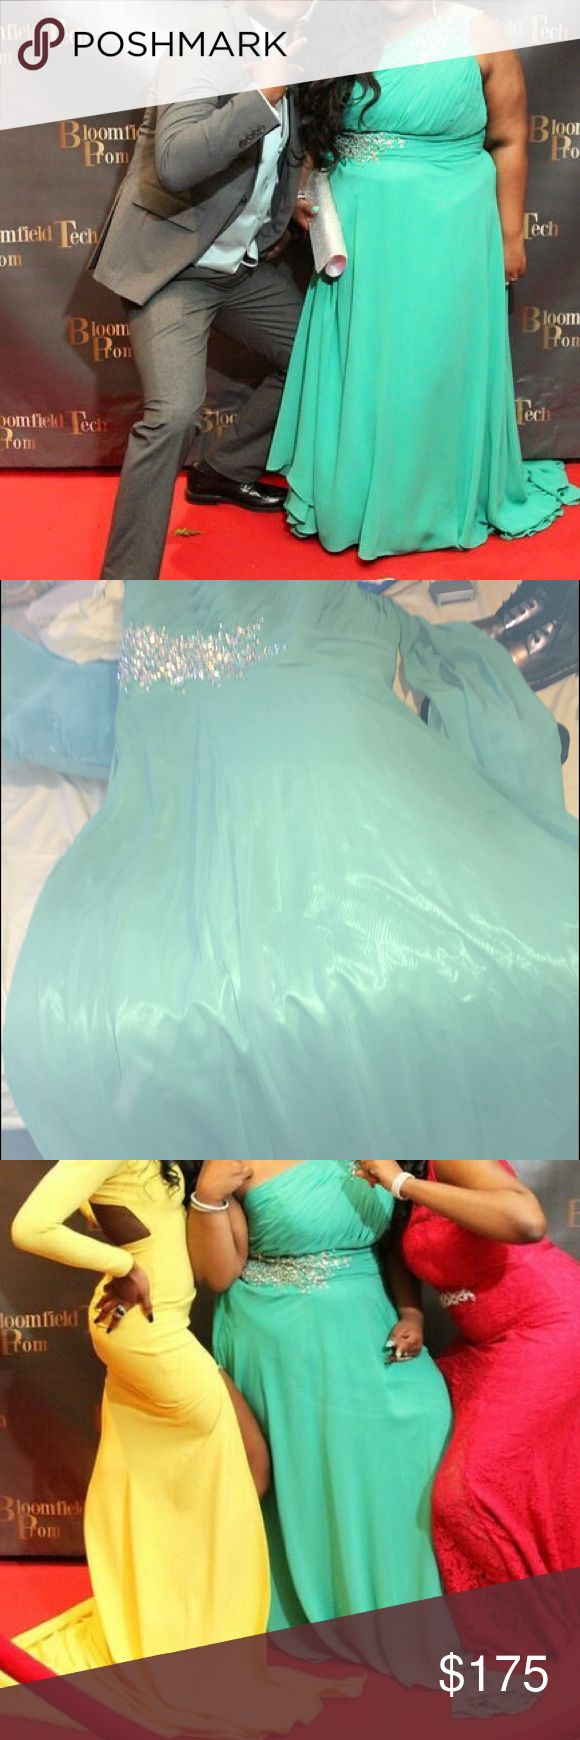 Plus size Prom Dress I know how hard it is for petite plus size girls to find dresses. I saw a picture online that I loved and got mine customer made. As hard as it is. It's just sitting in my closet taking up space. This is a sea-foam green prom dress with that goes over one shoulder. I wanted to show off the color. I'm 4'11 and about 200 pounds. C -cup and I fit in either 16 or 18. The dress is floor length in 4 inch heels. There is a train. It will be dry cleaned prior to shipment…